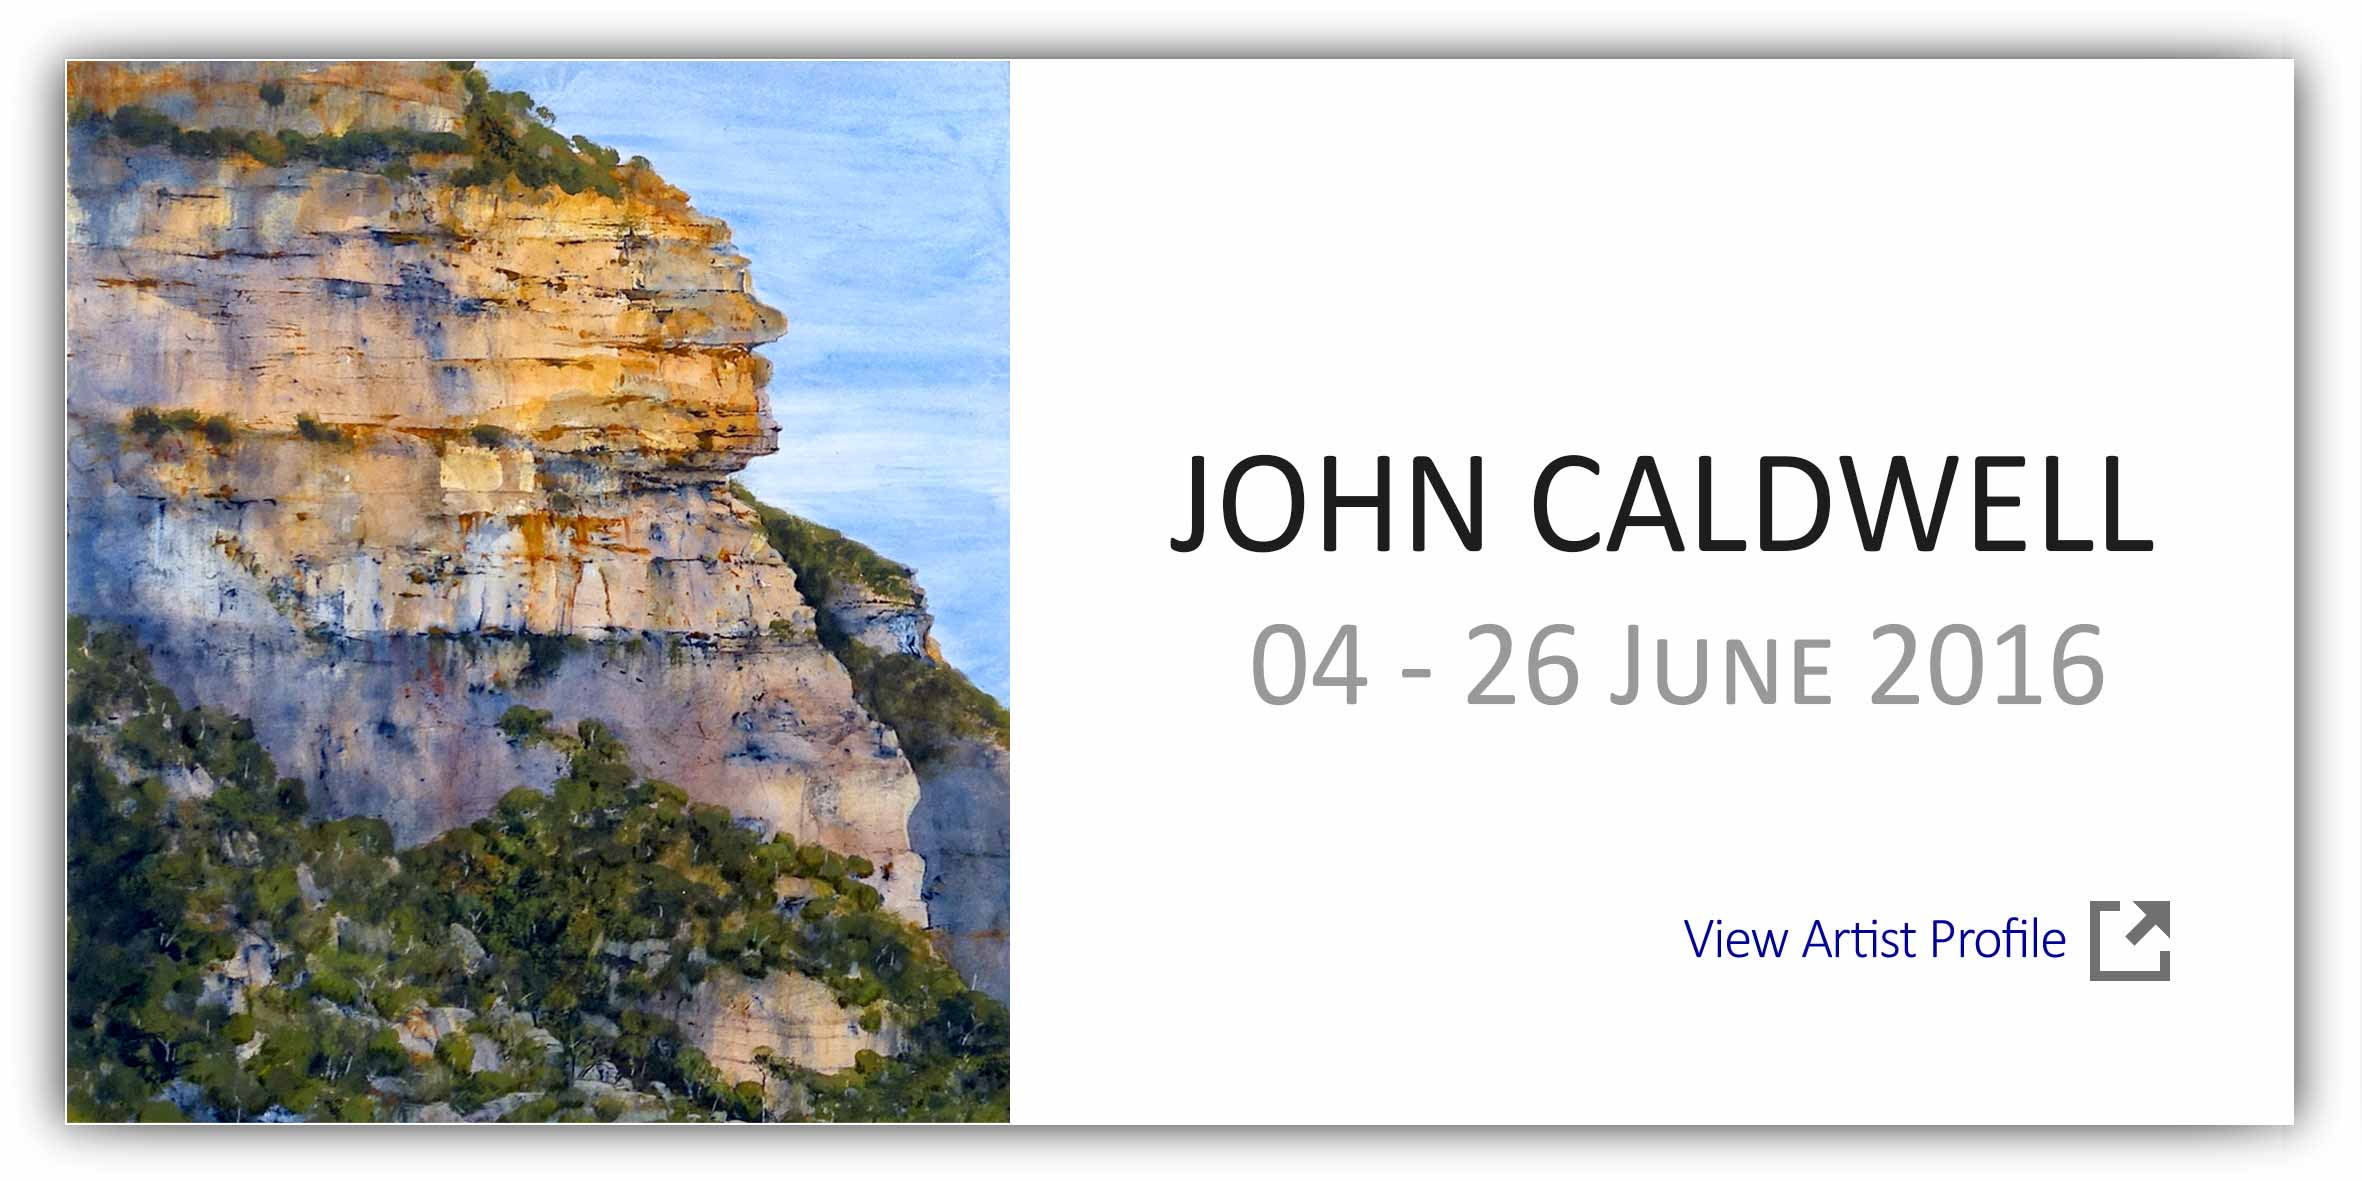 View Exhibition at Artsite Gallery. 04 - 26 June 2016: John Caldwell - Caldwell Country Unframed.